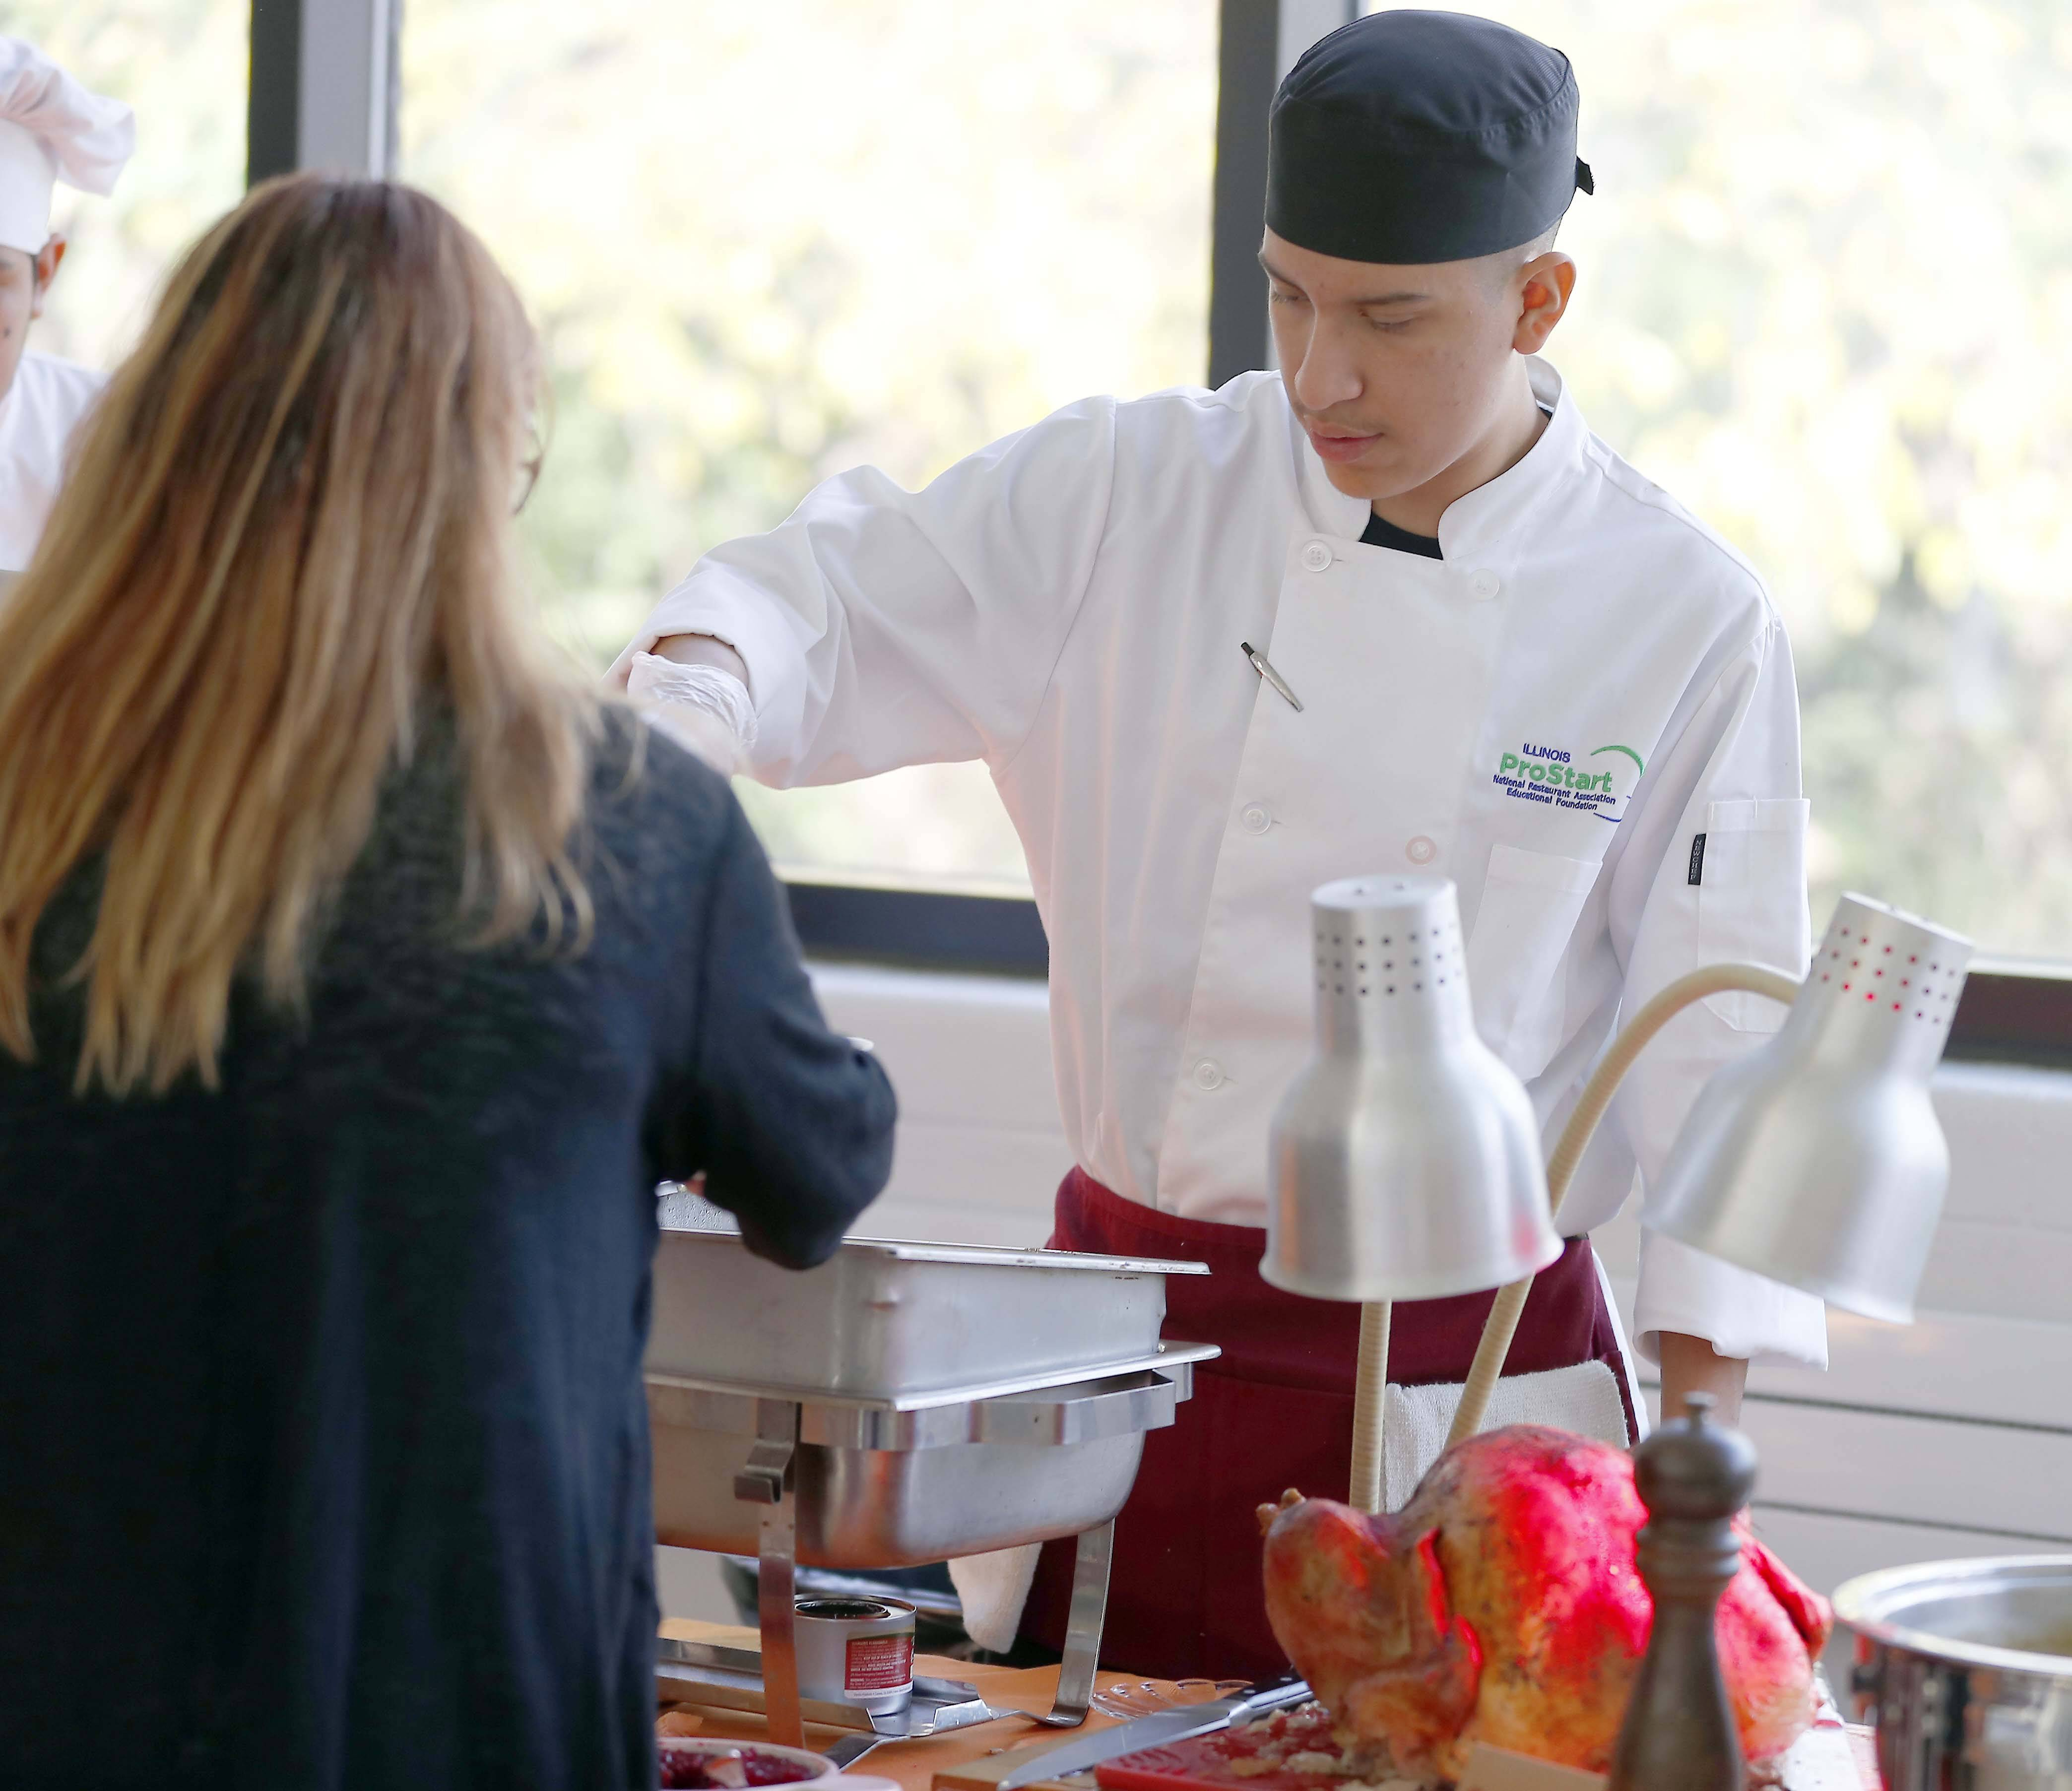 Brian Onofre, 17, a student in Elgin High School's Clumsy Chef culinary program, and classmates prepared and served a fall feast Thursday at the school.